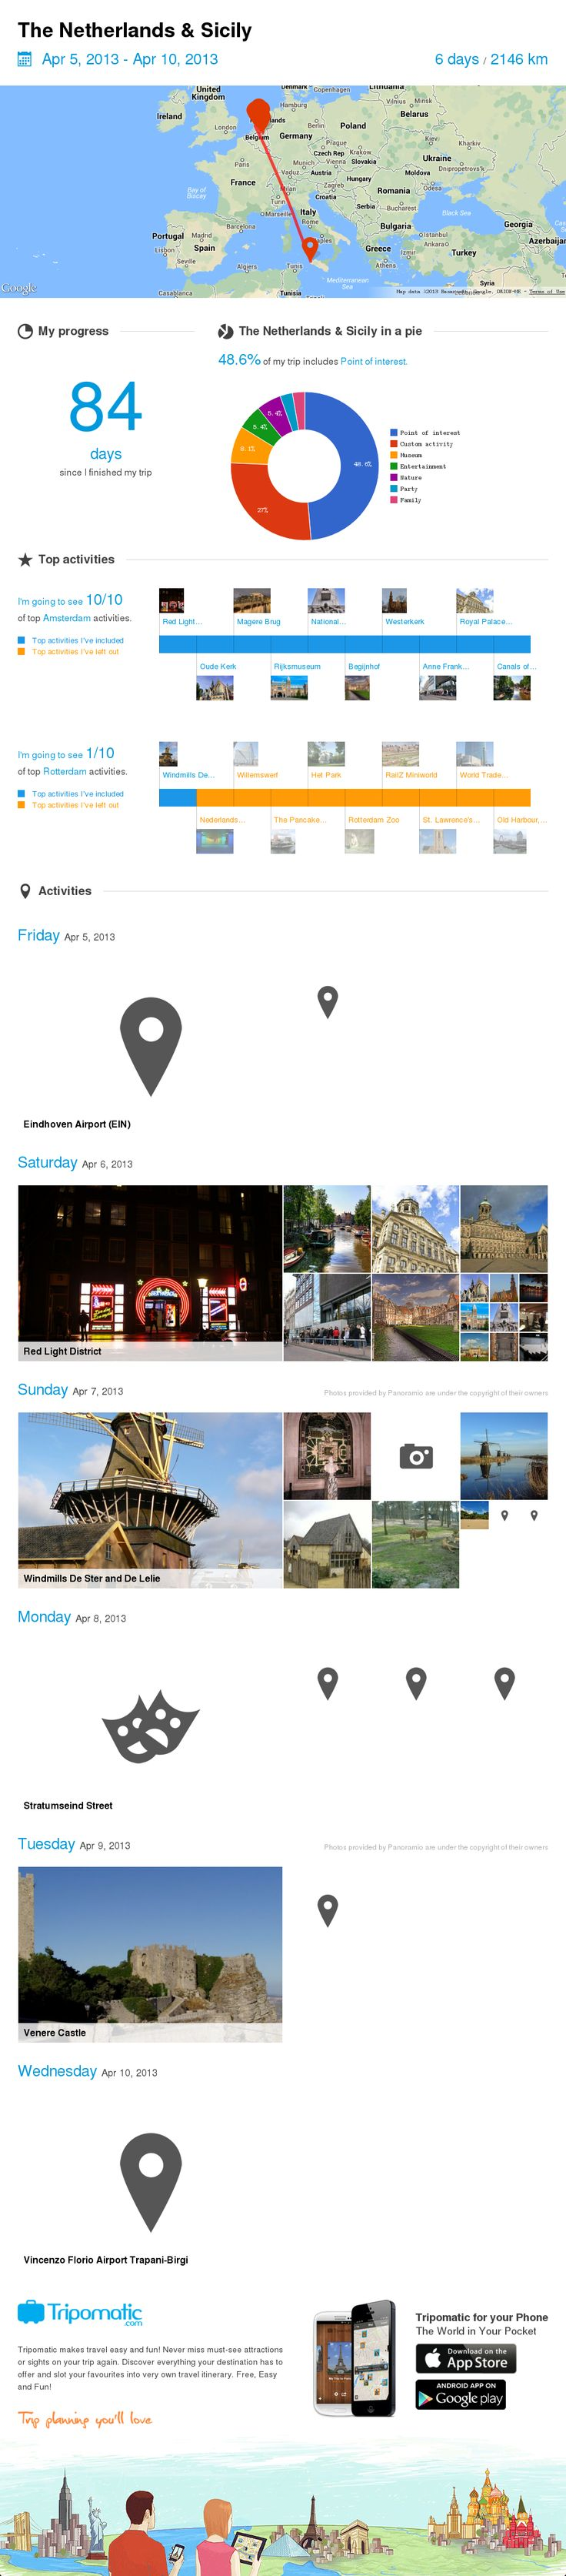 Check out my awesome trip to Amersfoort, Eindhoven, Amsterdam, Soesterberg, Valkenburg, Rotterdam, Tilburg, Den Haag and Trapani!